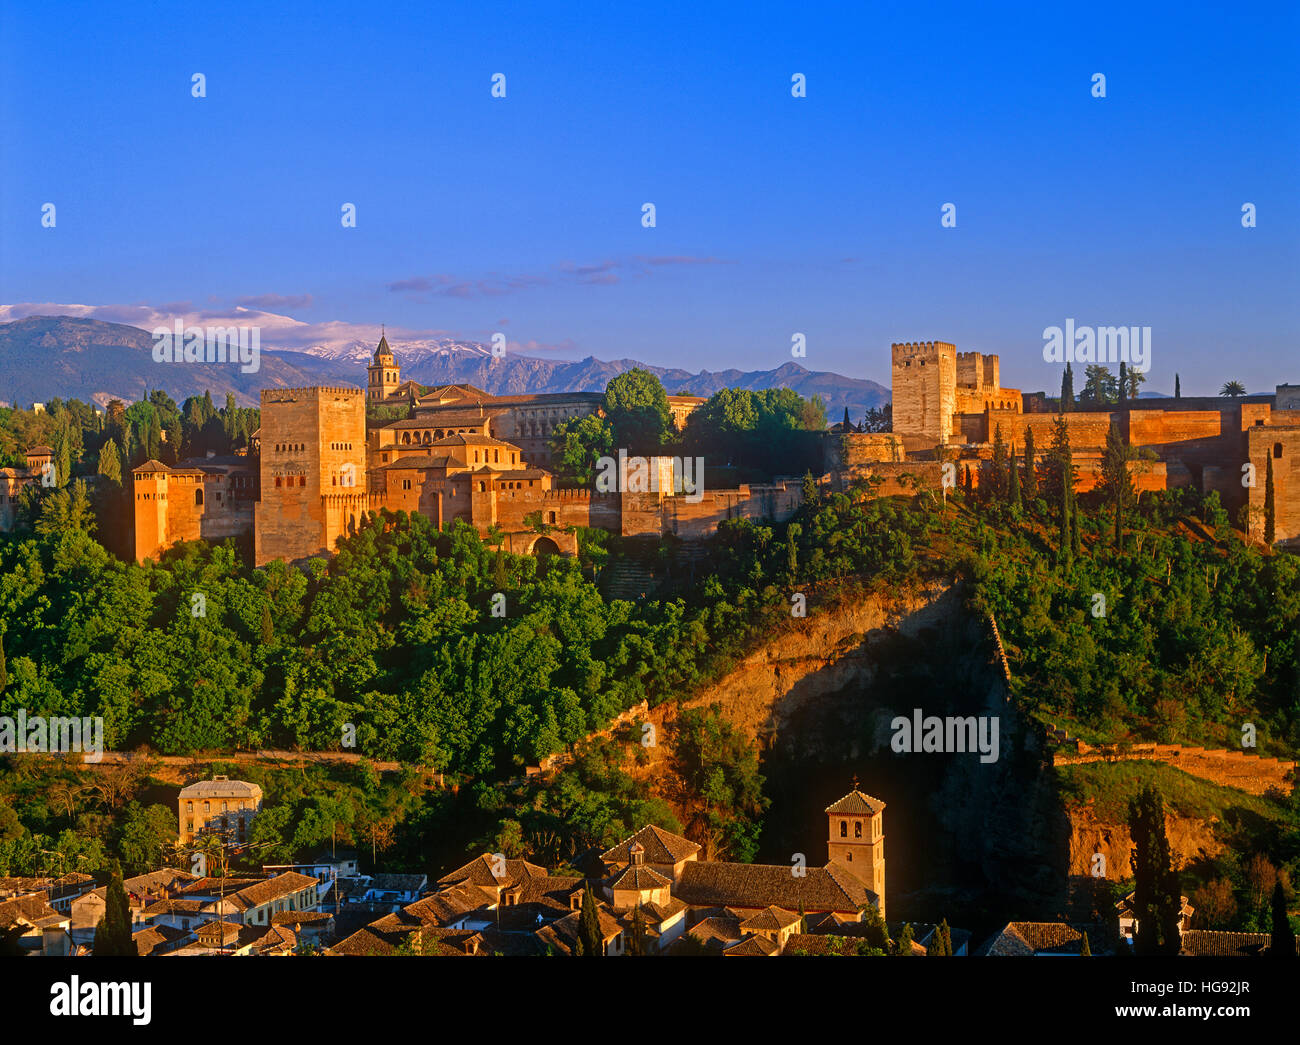 Alhambra Palace and the Sierra Nevada Mountains, Granada, Andalusia, Spain. - Stock Image